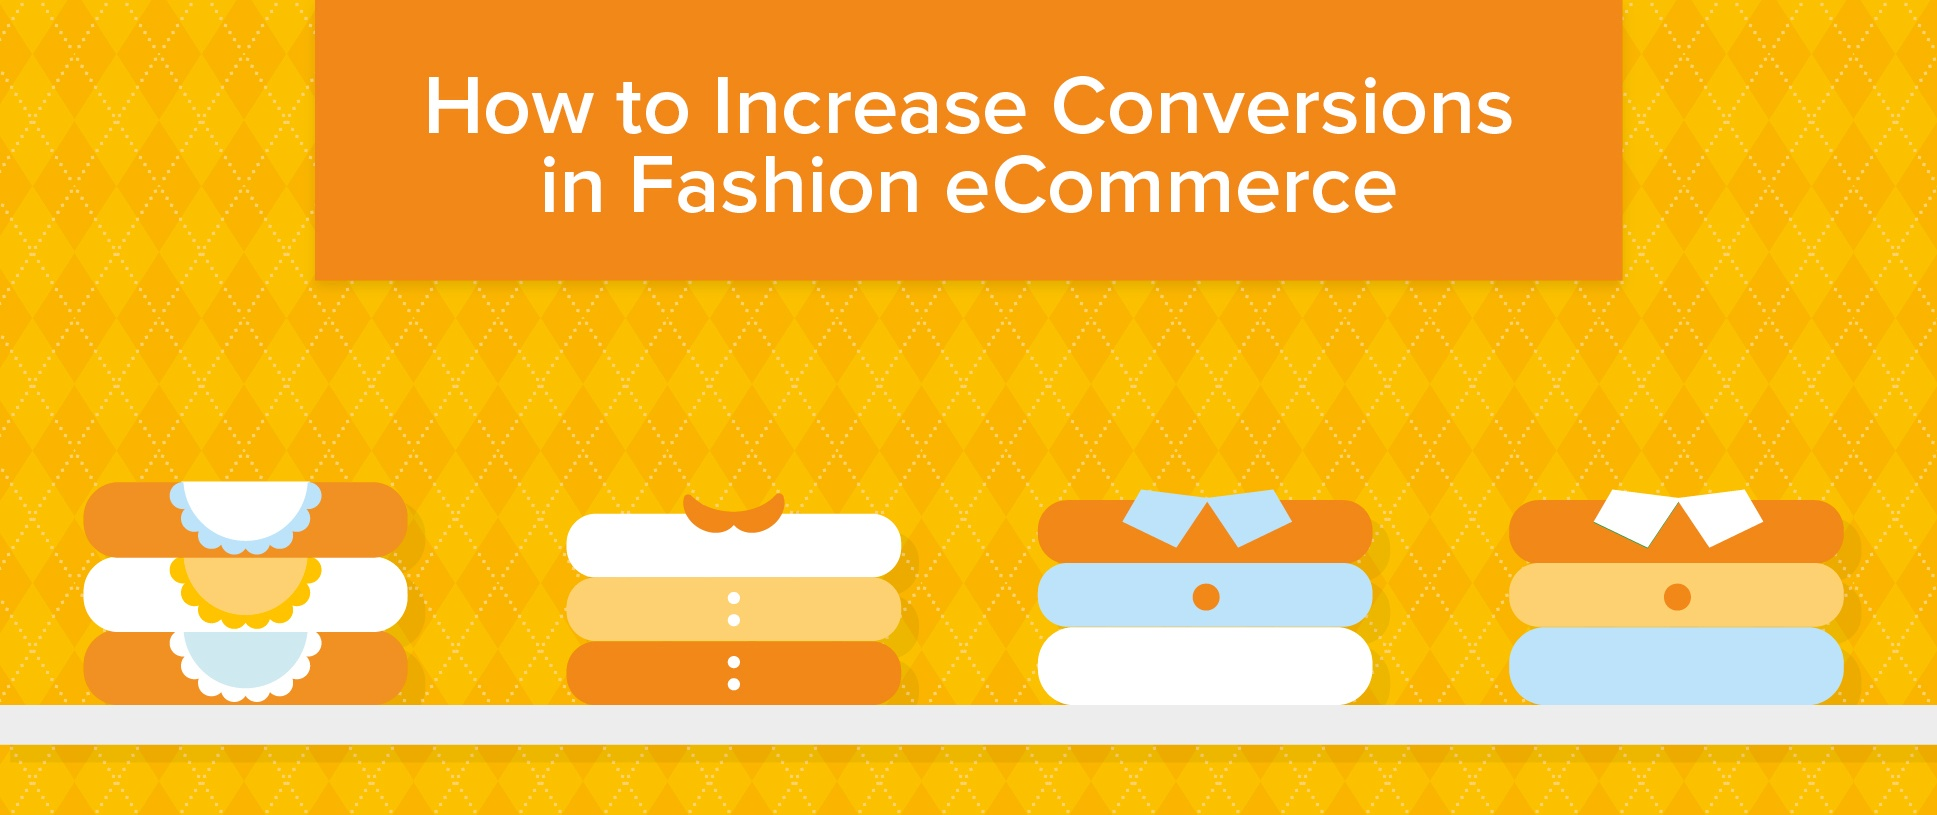 How_to_increase_conversions_in_fashion_eCommerce.jpg